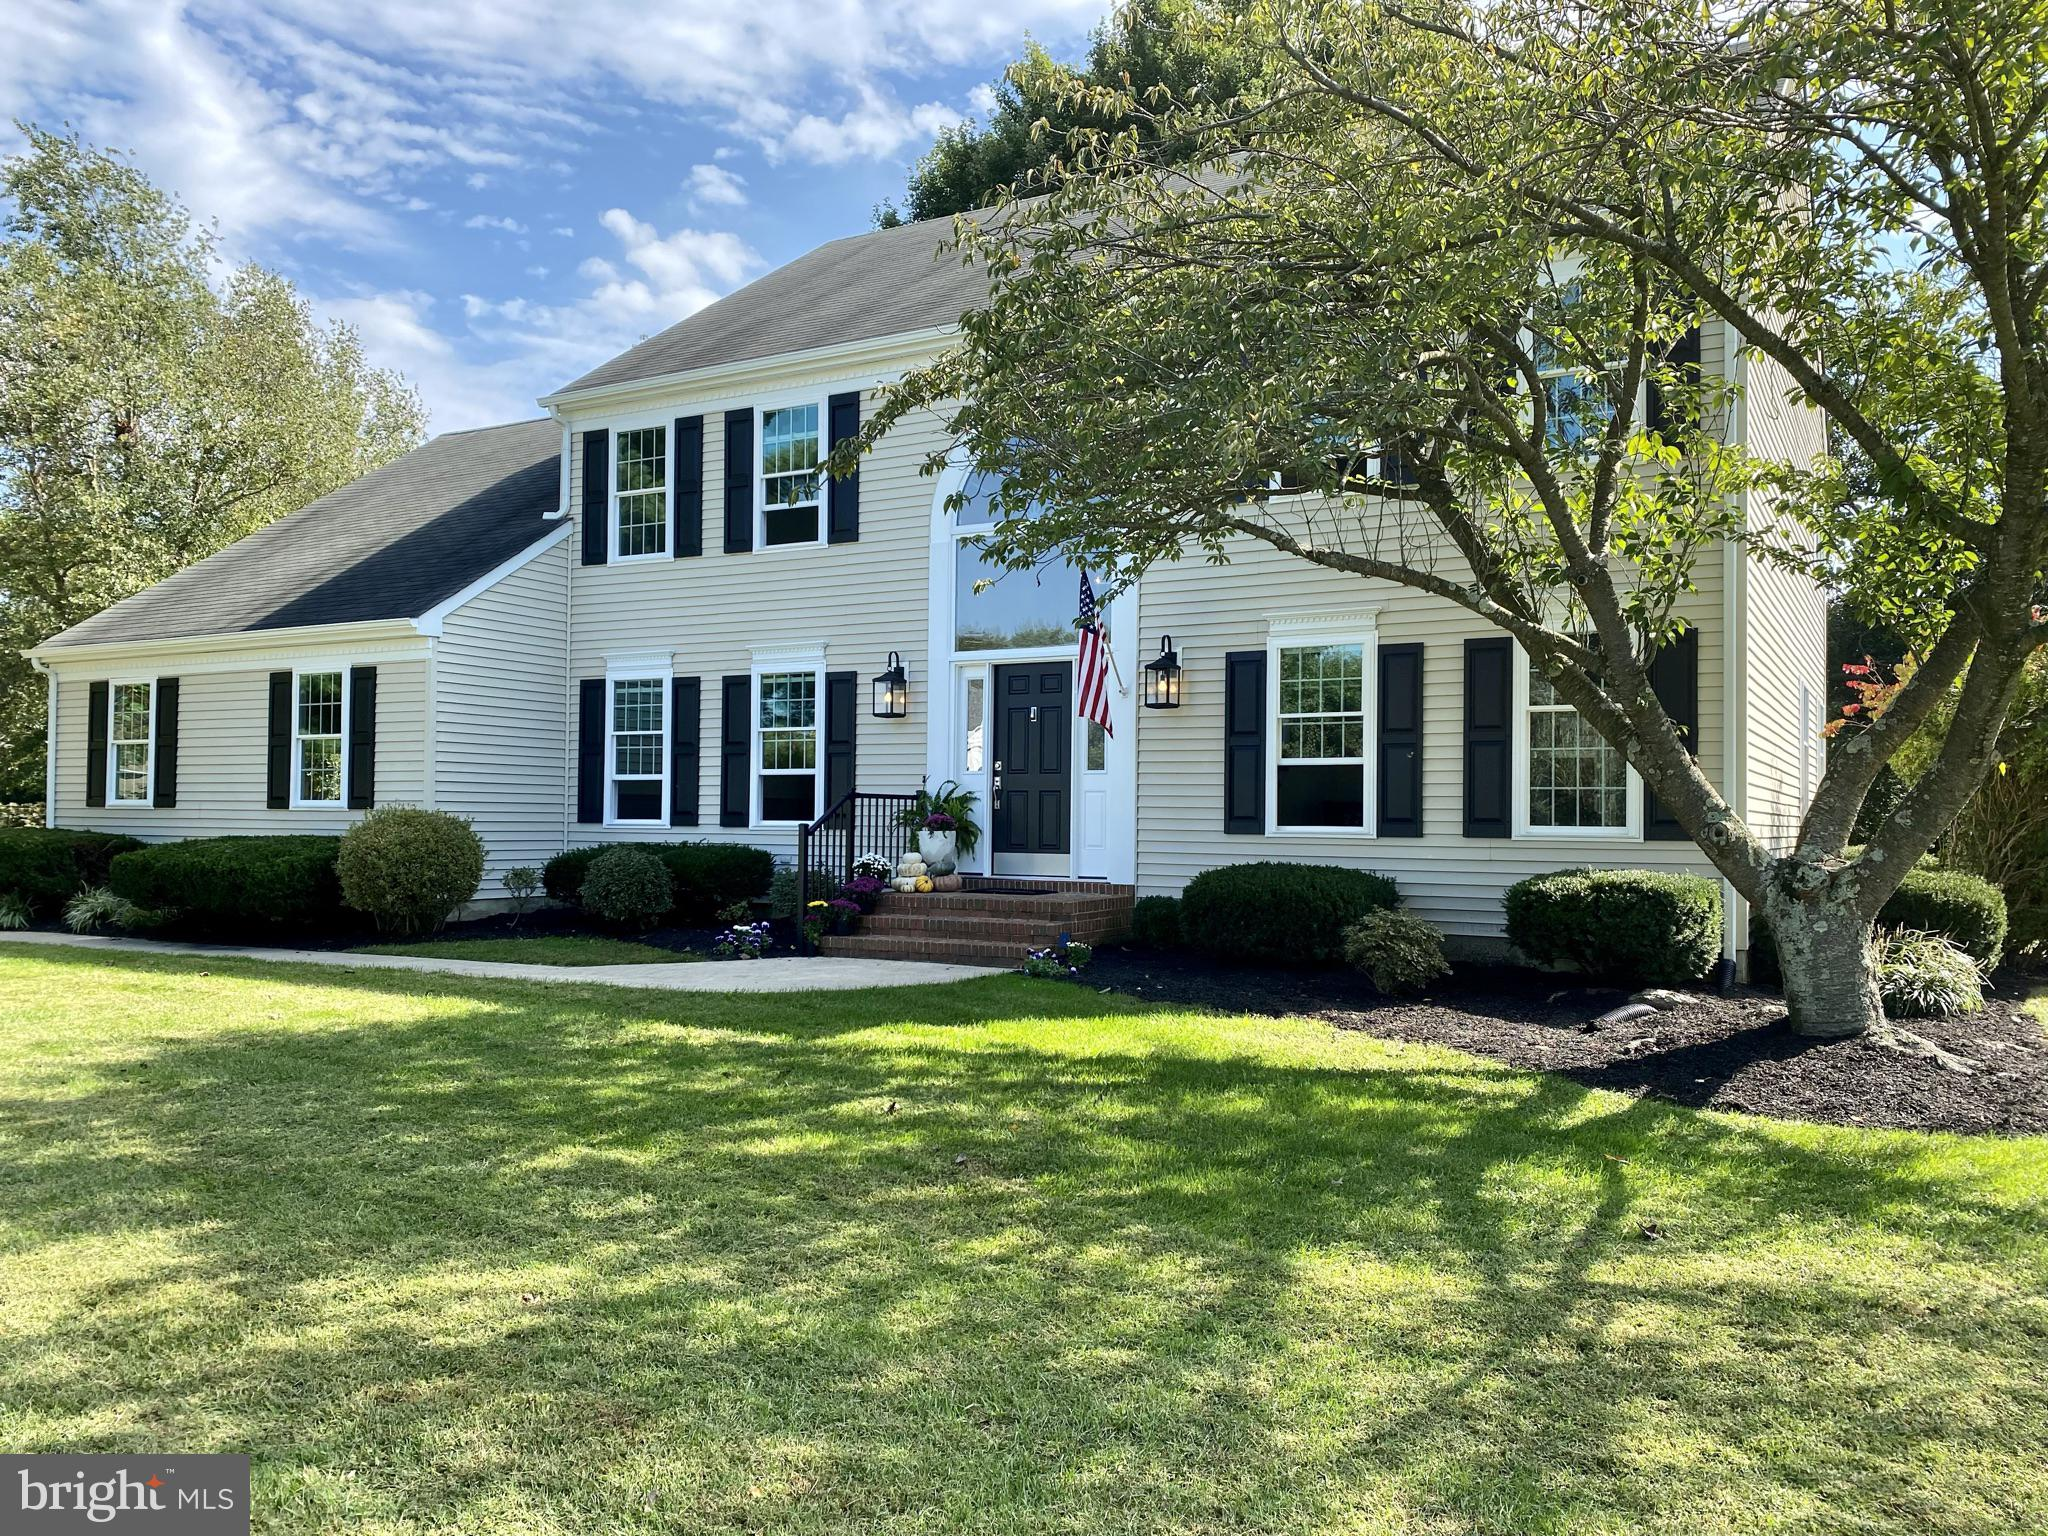 Great location and lots of updates!  Beautiful colonial in the popular Pennwood neighborhood.  Custom built and well-maintained by the original owners.  This home has now undergone extensive updates and is ready for new owners to enjoy.  The traditional layout has a great flow with large, open rooms and custom details throughout.  Enter through a grand, two-story foyer with large windows and plenty of natural light.  The open kitchen has original, solid wood oak cabinets with new Quartz counters, backsplash, and appliances including cooktop with pop up vent and double ovens.  All new cottage-style windows throughout the home.  Gas fireplace in family room that opens to original Trex deck with two French doors.  Downstairs bedroom with full en-suite that has been updated with custom finishes.  Upstairs are 3 bedrooms including a spacious primary suite with beautifully renovated and light-filled bathroom.  The en suite bath features a custom tile shower, double vanity with marble backsplash, and a freestanding tub in front of a corner filled with windows.  New flooring and paint throughout.  Upstairs laundry.  Large attic space over garage and full basement with bilco door provide plenty of storage space.  Newer HVAC system. The backyard is spacious with a large shade tree and greenery in the back for privacy.  Awesome location that is close to everything in a  neighborhood with custom homes  on larger lots.